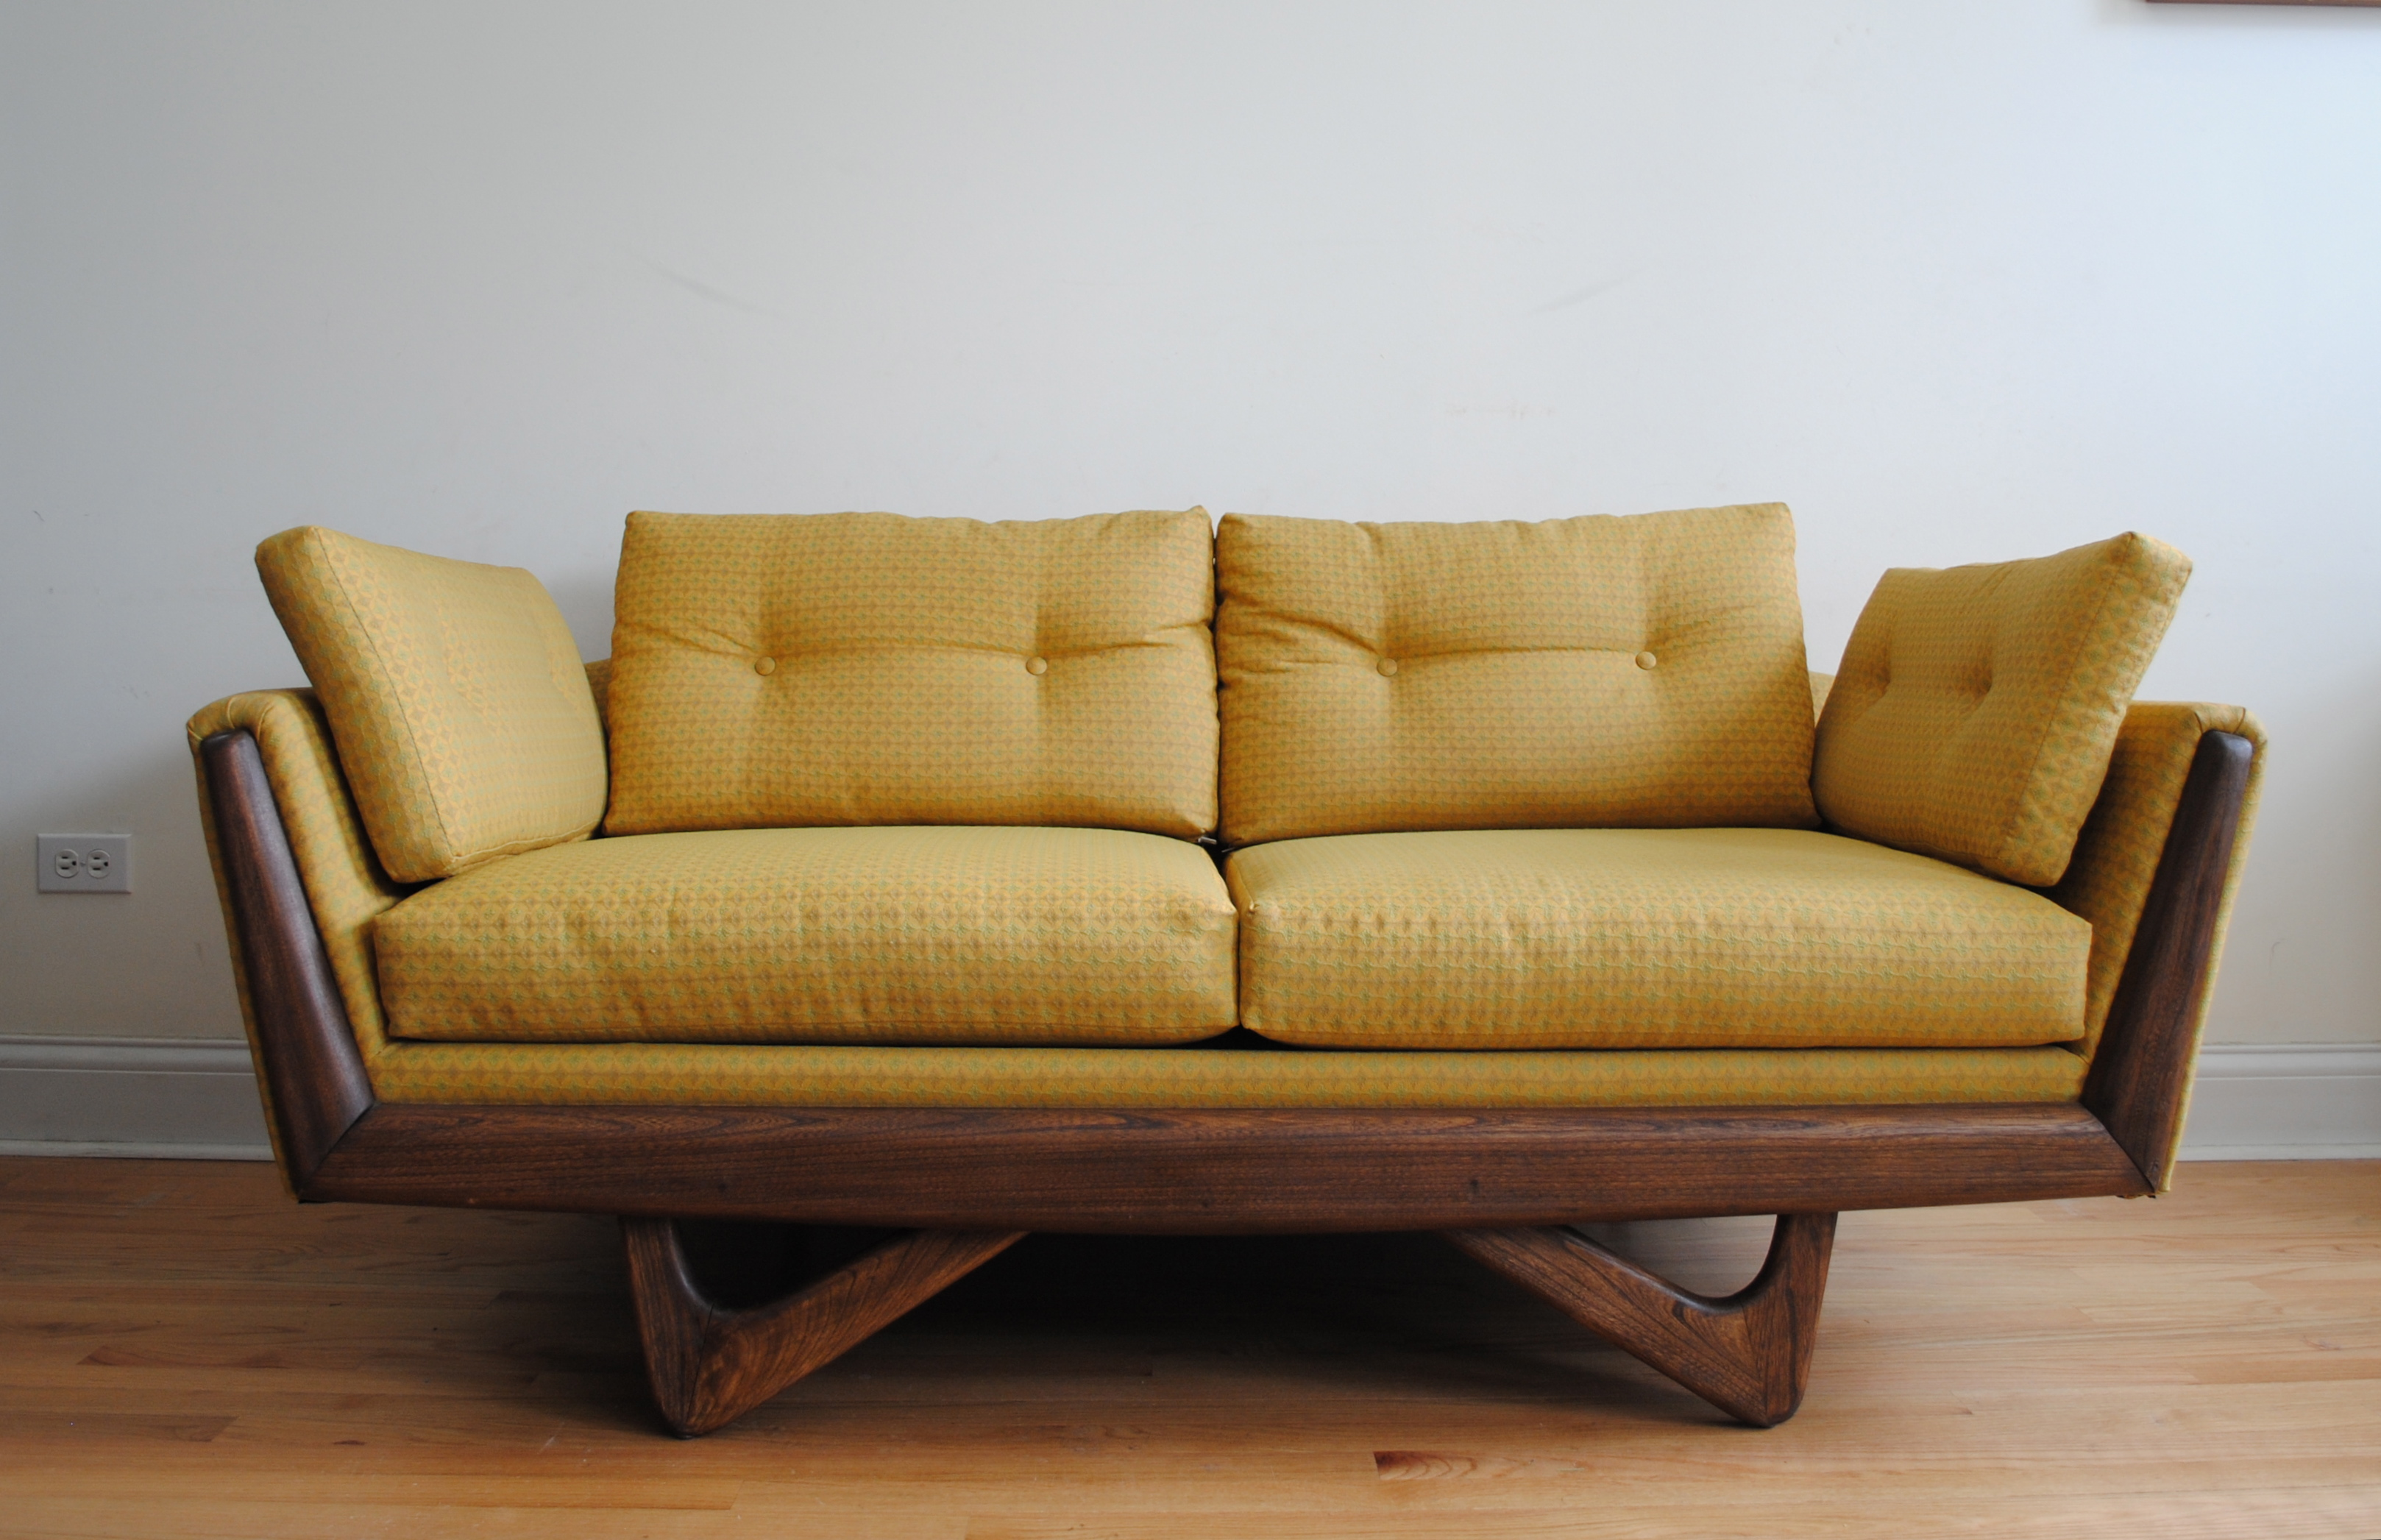 Mid century modern adrian pearsall sofa phylum furniture for Mid century modern seating